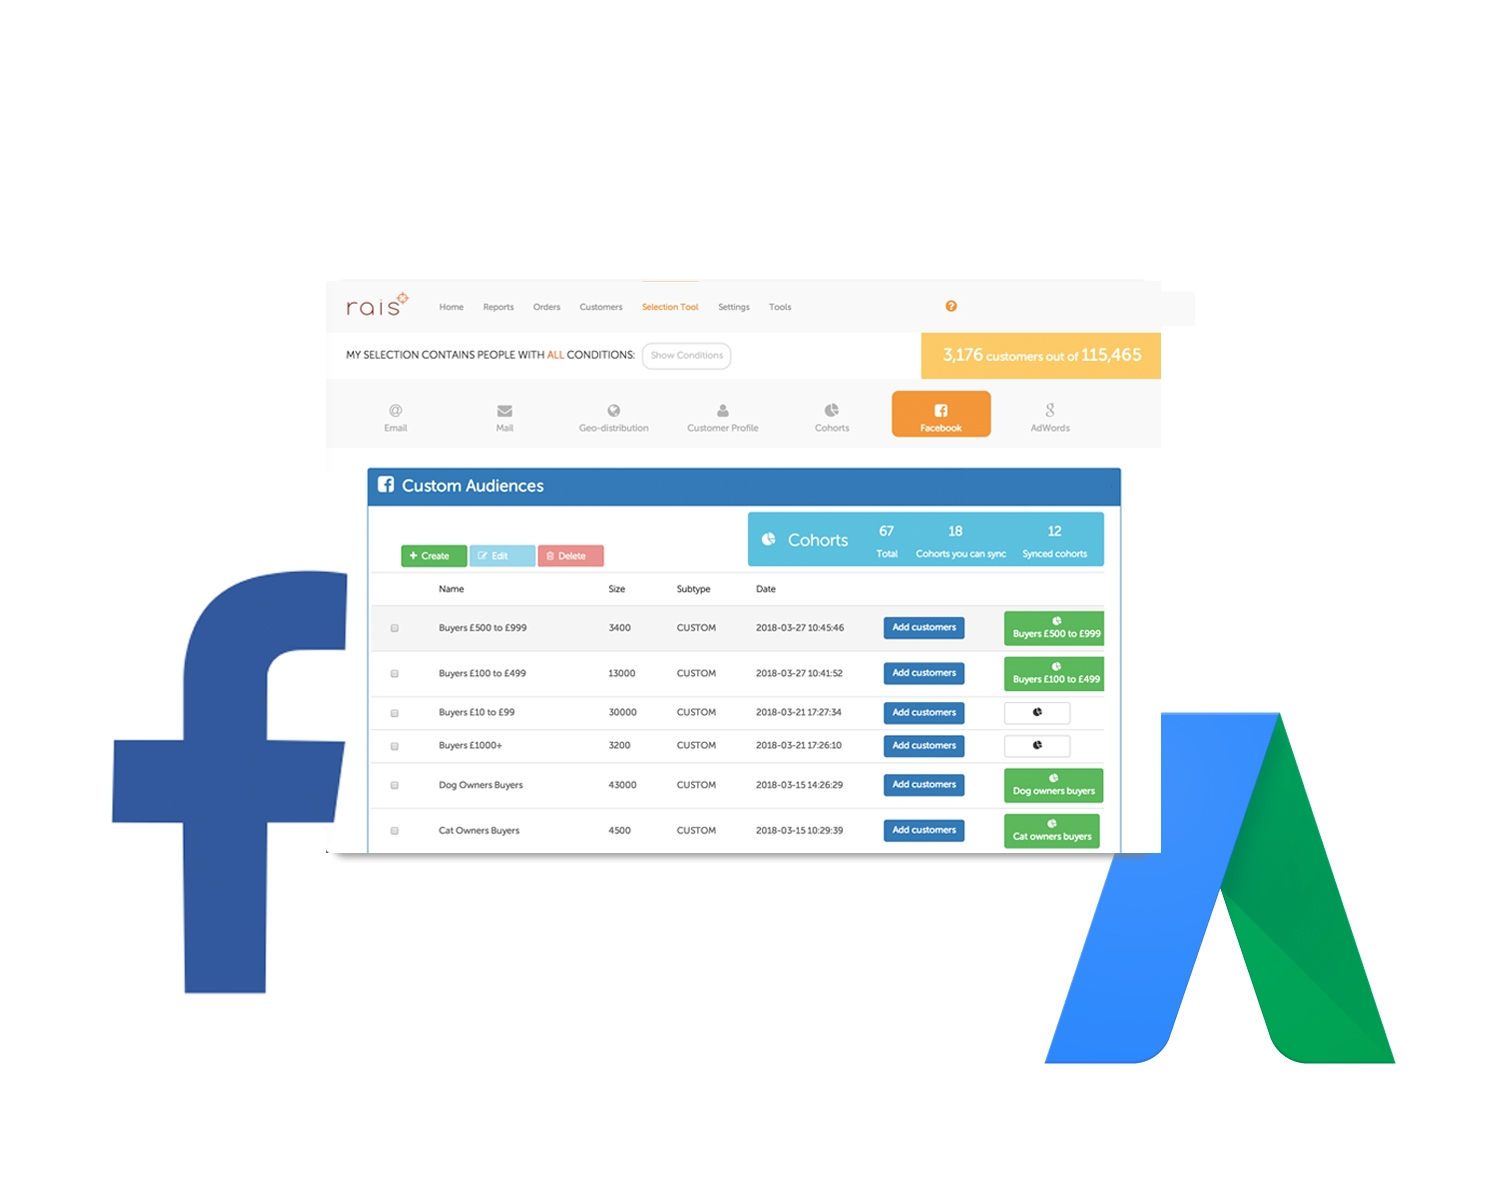 Optimise Facebook / AdWords spend - rais makes it easy to ensure you don't waste budget exposing ads to people, who have already bought a specific item or category you're marketing. It's equally easy to re-market to people who've not responded to an email or promotion. rais updates audiences dynamically ensuring only the right people see your messages.Waste less advertising budget.